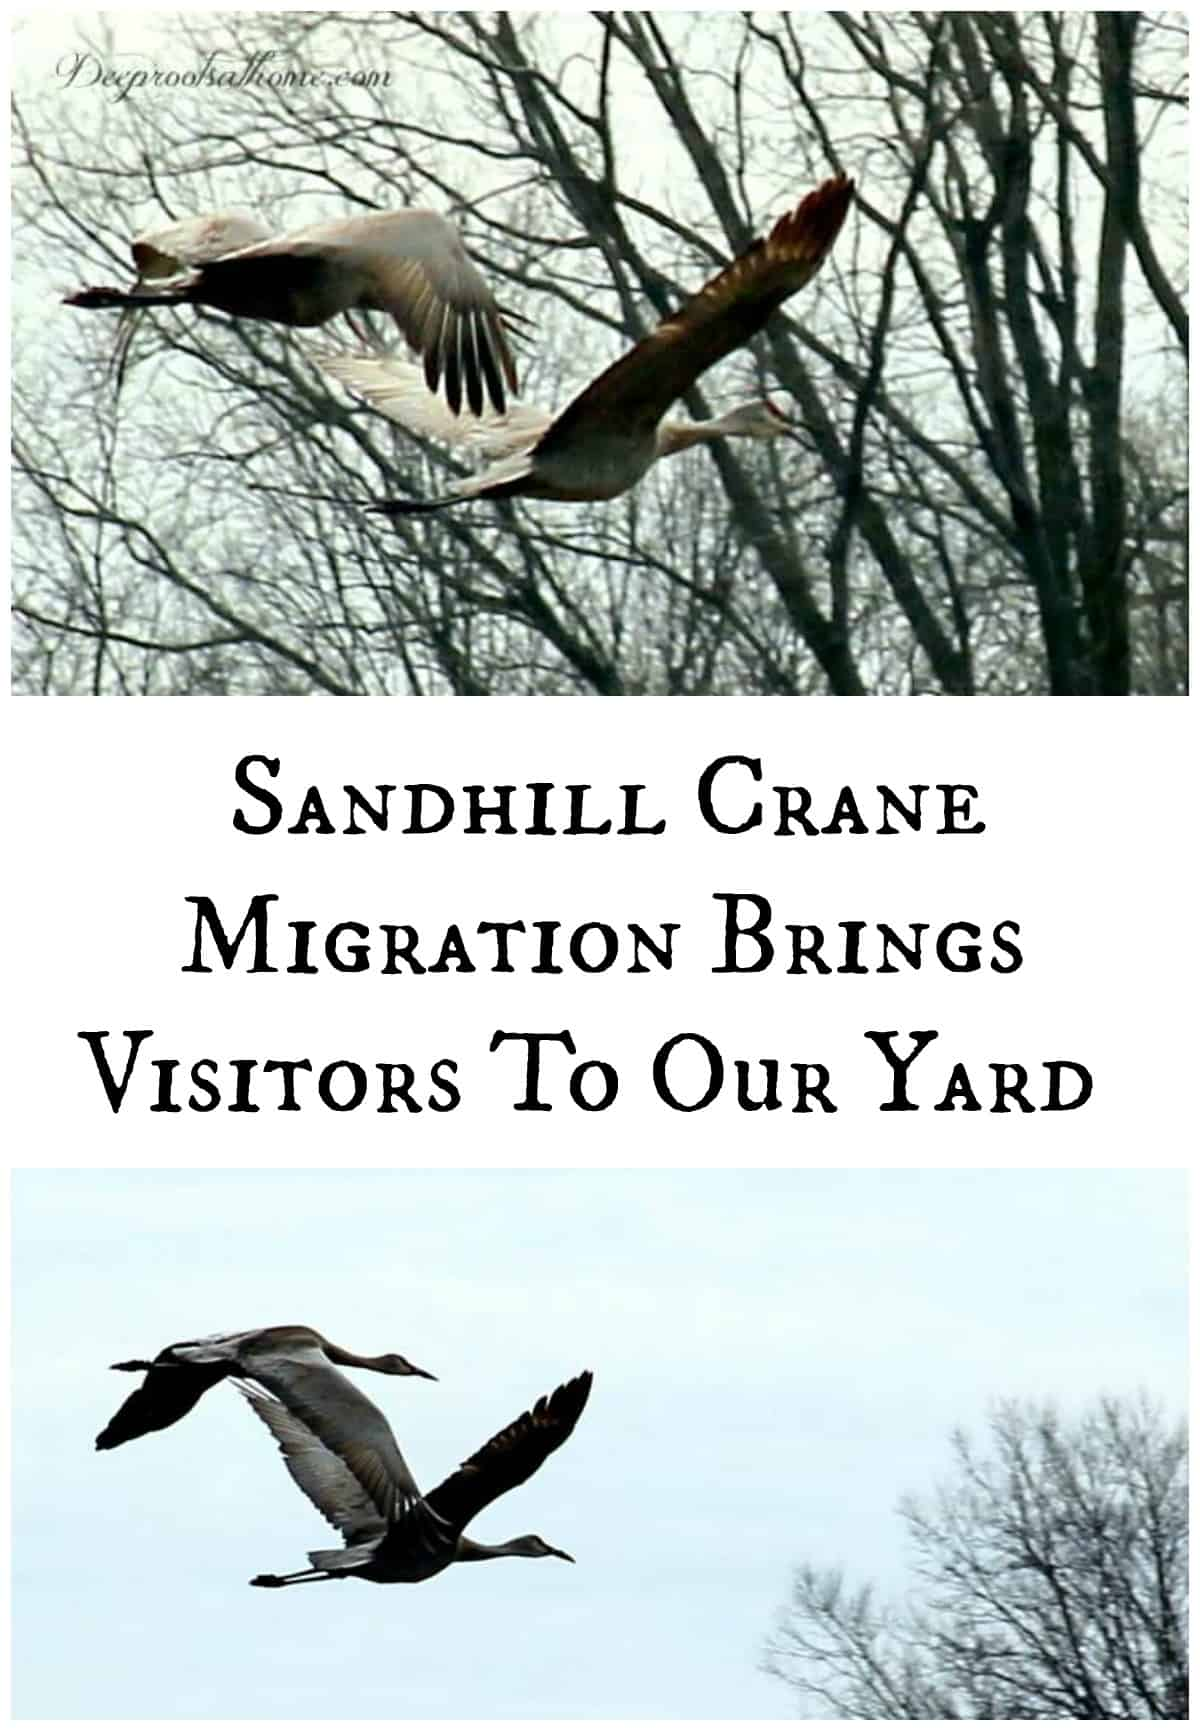 Sandhill Crane Migration Brings Visitors To Our Yard, Sandhill cranes in flight.